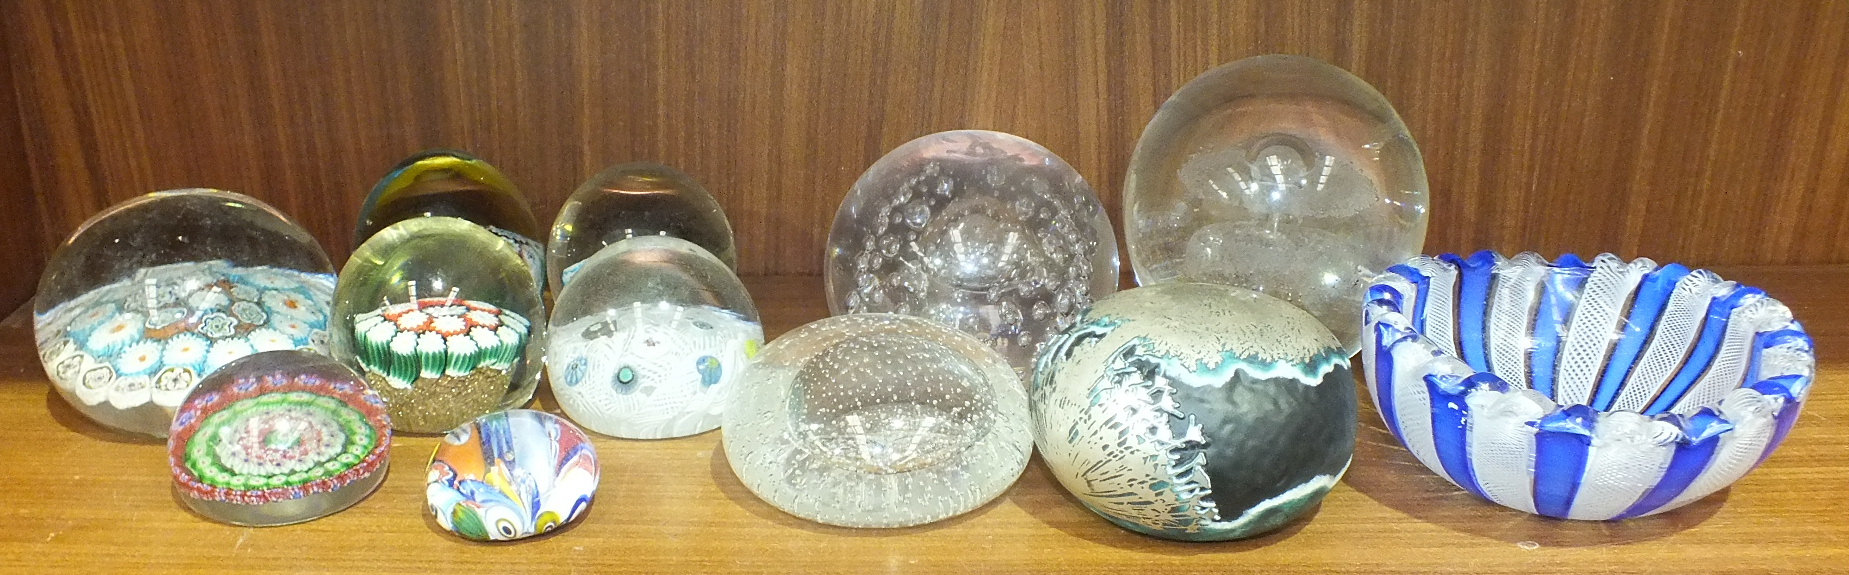 Lot 66 - A collection of millefiori and plain glass paperweights, an oval blue and white lattice-work glass